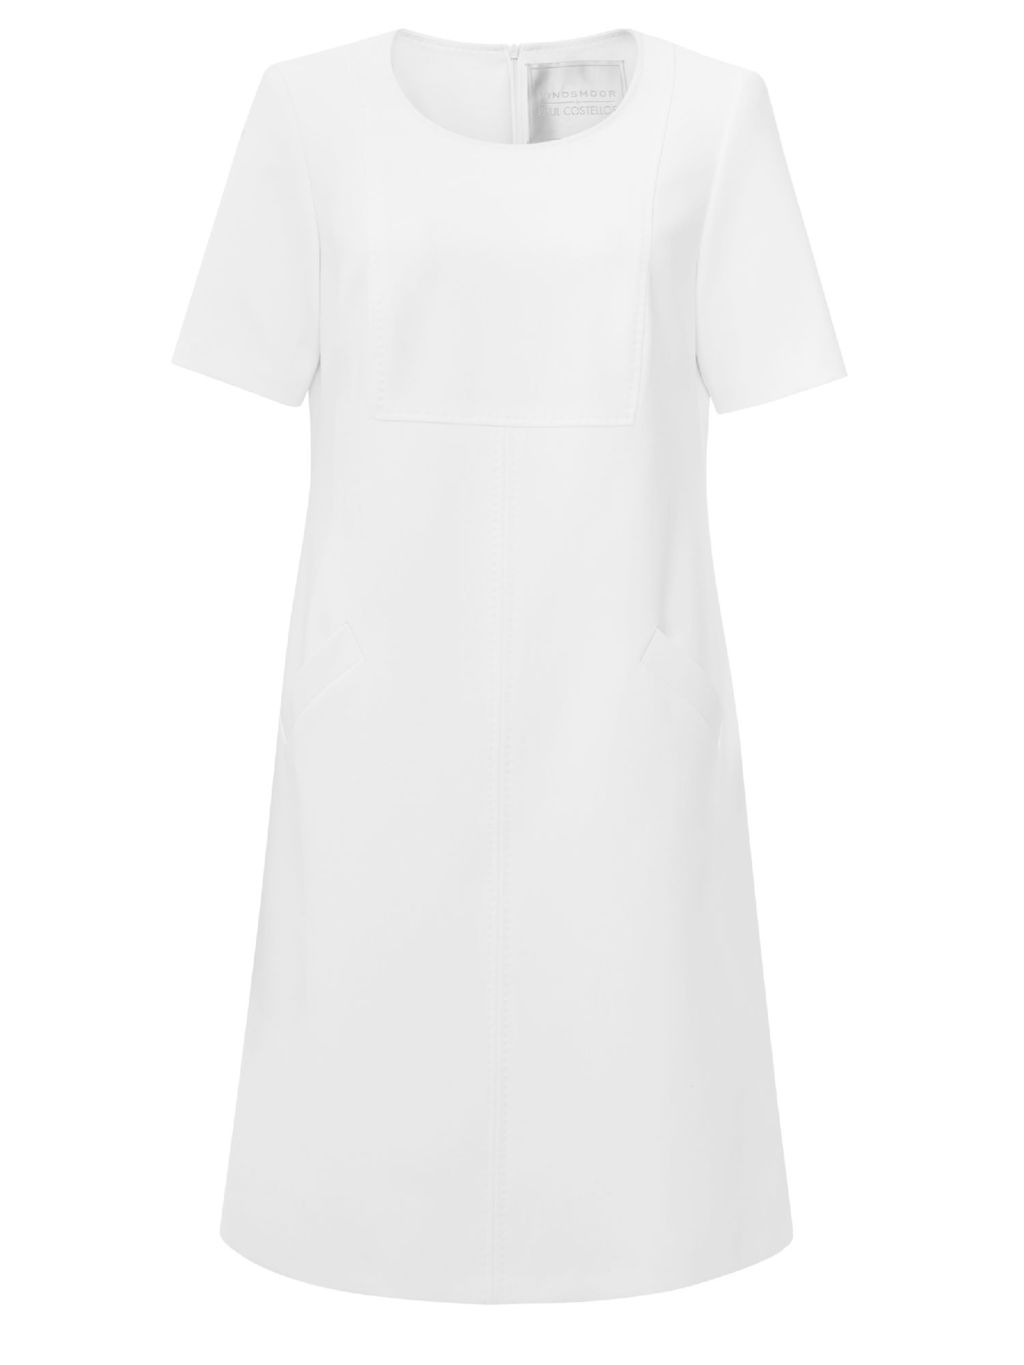 Henley Ivory Dress - style: shift; neckline: round neck; pattern: plain; predominant colour: white; occasions: casual, occasion, creative work; length: just above the knee; fit: soft a-line; fibres: polyester/polyamide - stretch; sleeve length: short sleeve; sleeve style: standard; pattern type: fabric; texture group: other - light to midweight; season: a/w 2015